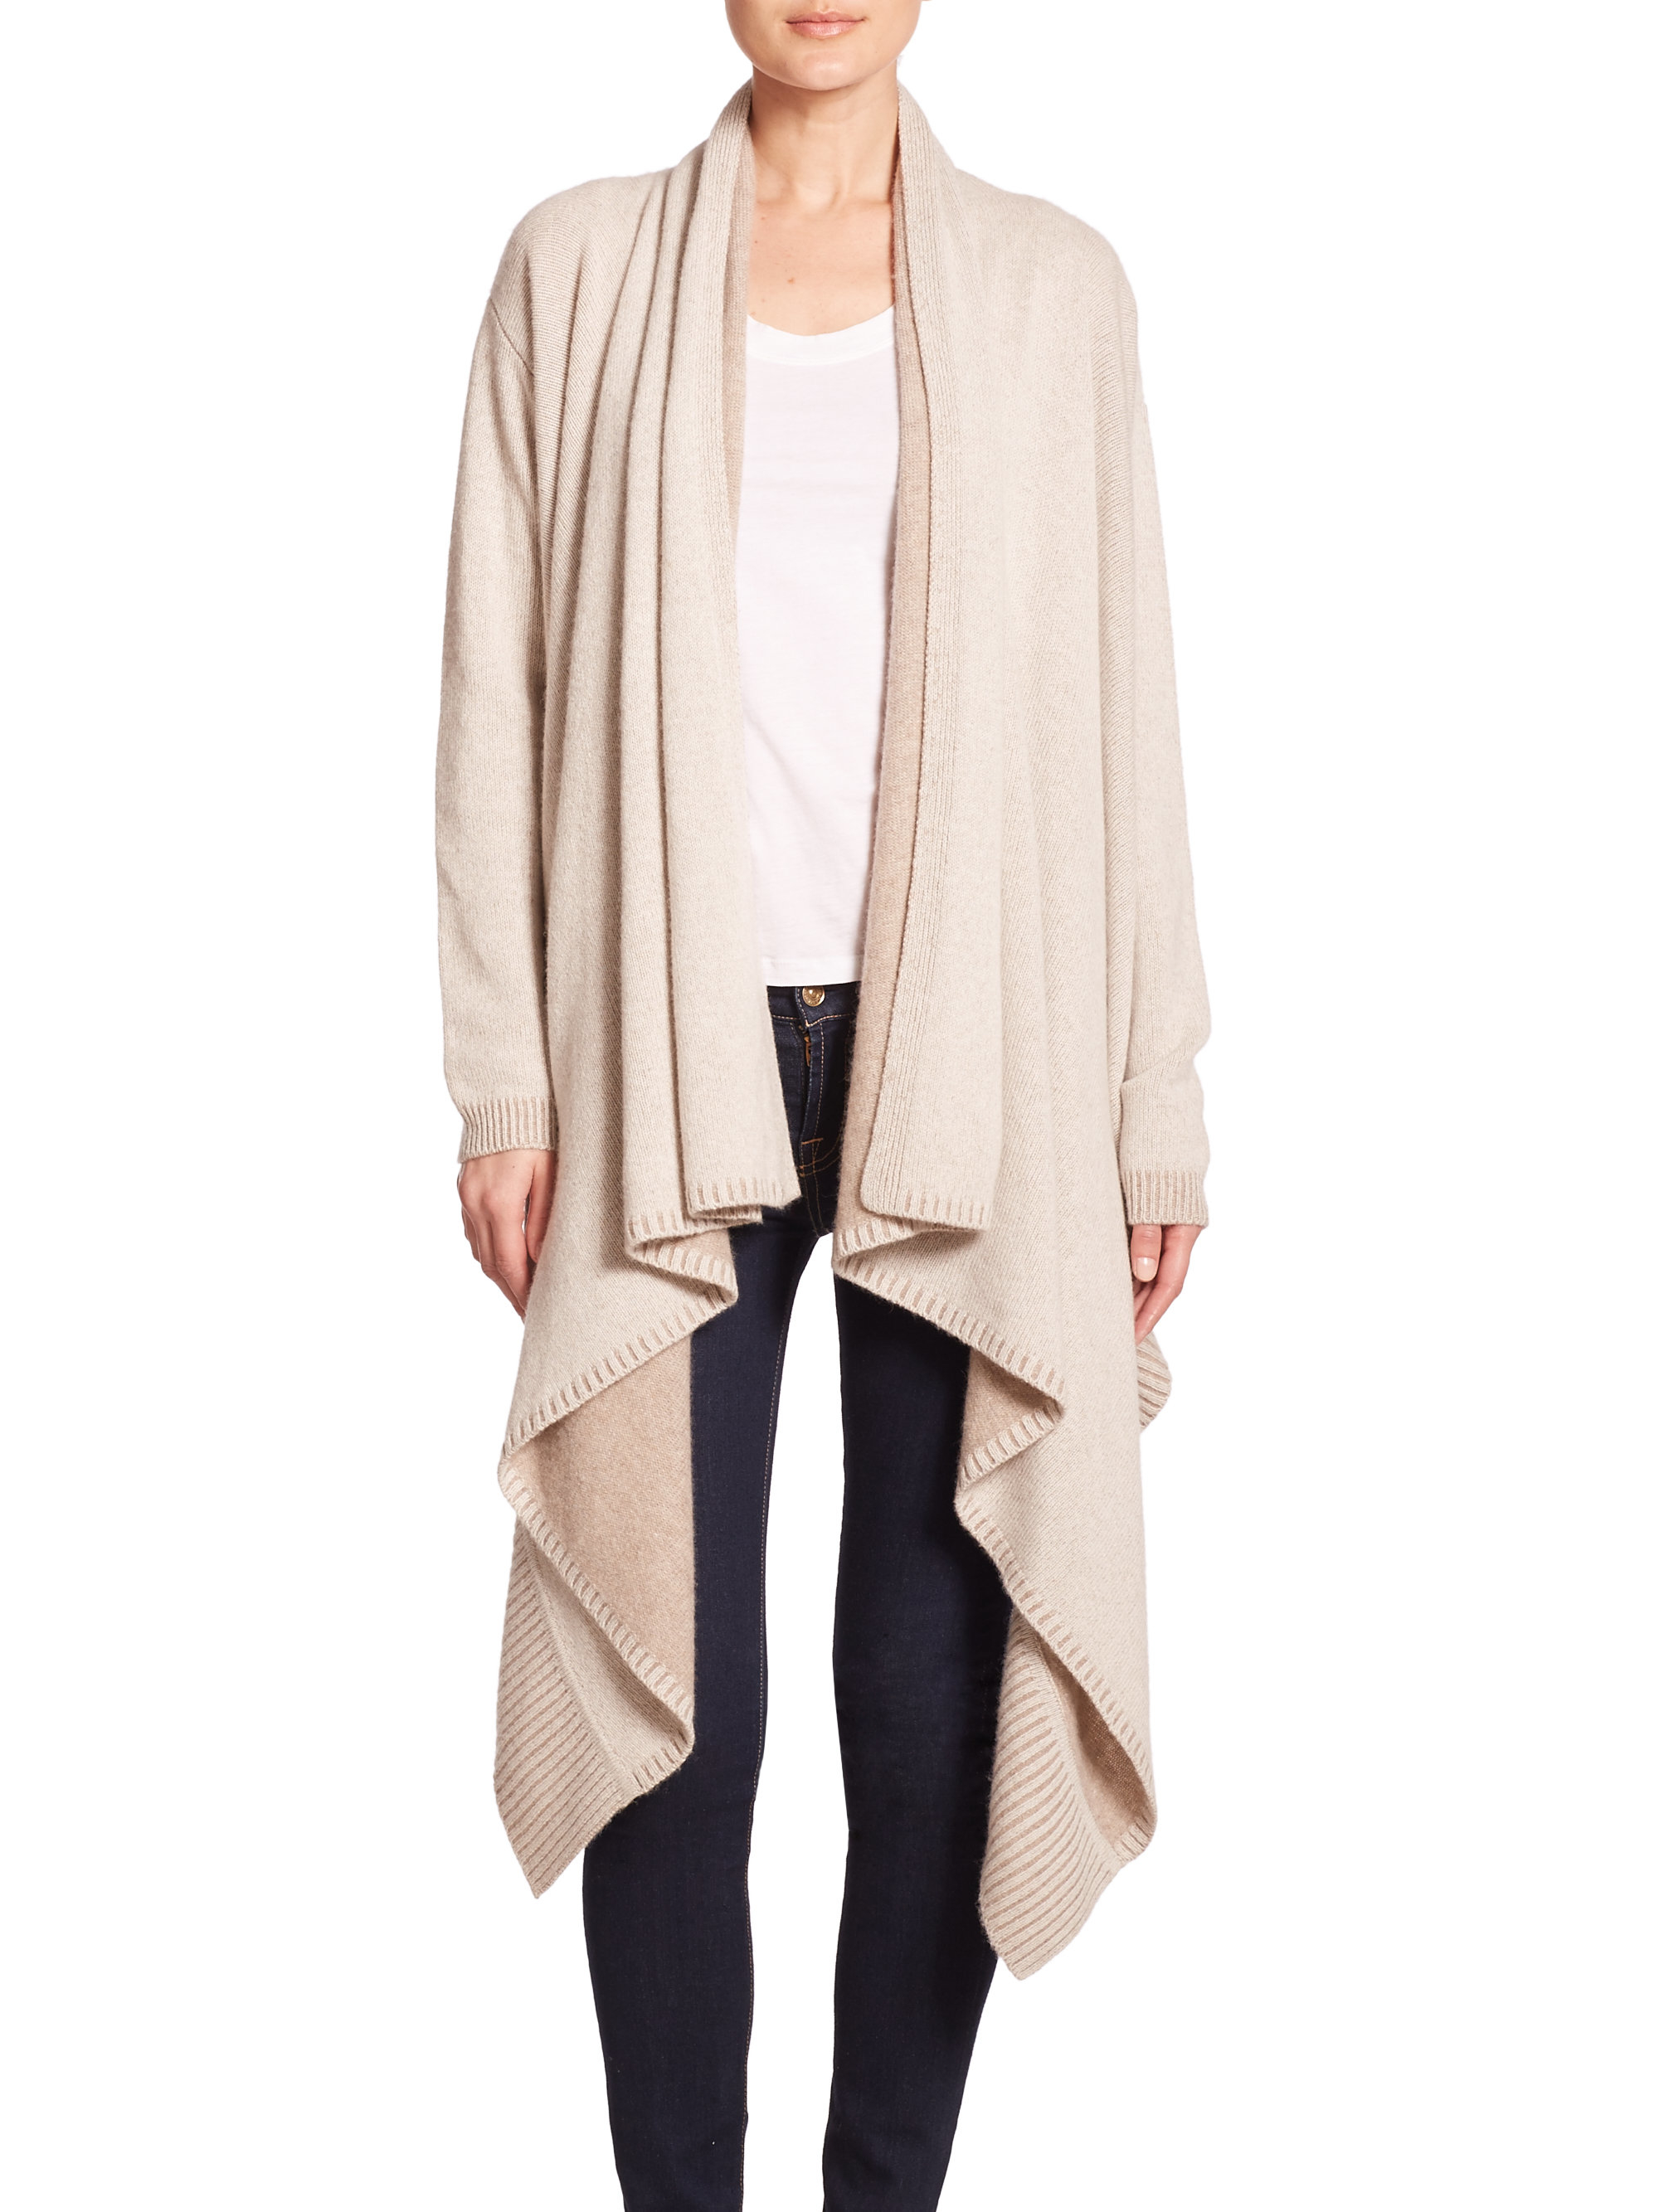 Alice   olivia Wool/cashmere Waterfall Cardigan in Natural | Lyst